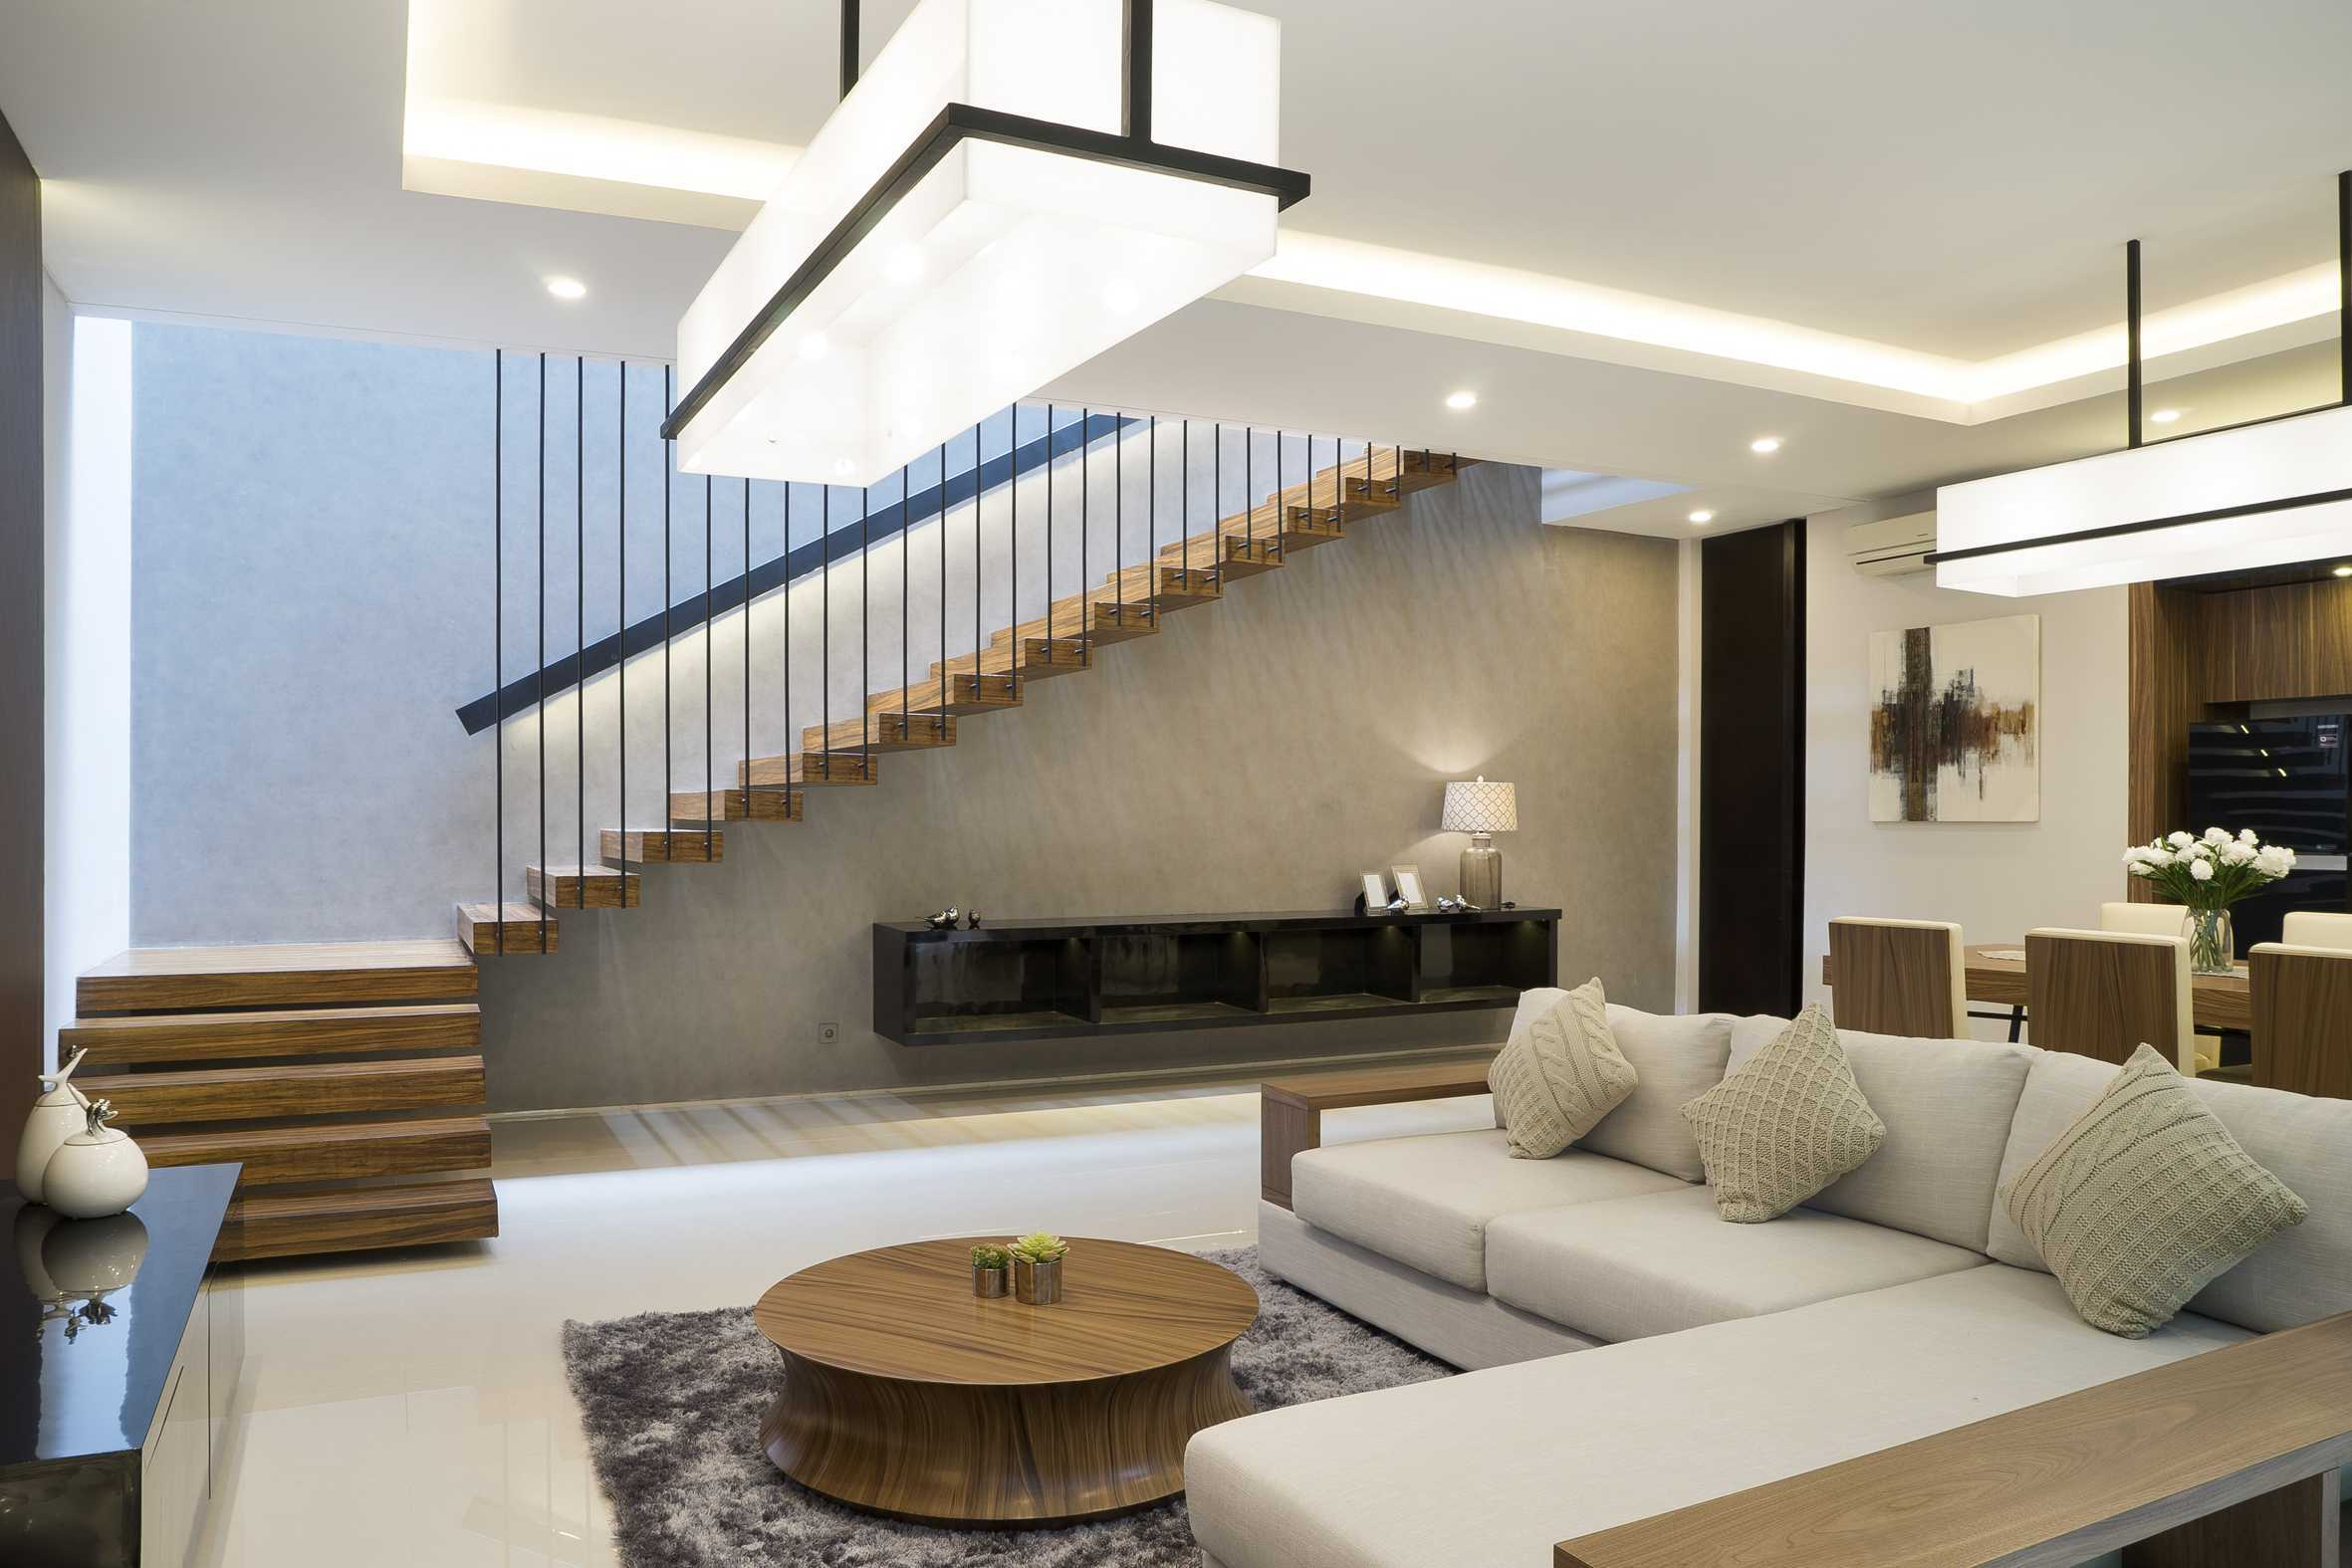 "Simple Projects Architecture ""s"" House Pakuwon Indah, Surabaya - Indonesia Pakuwon Indah, Surabaya - Indonesia Living Room   33113"